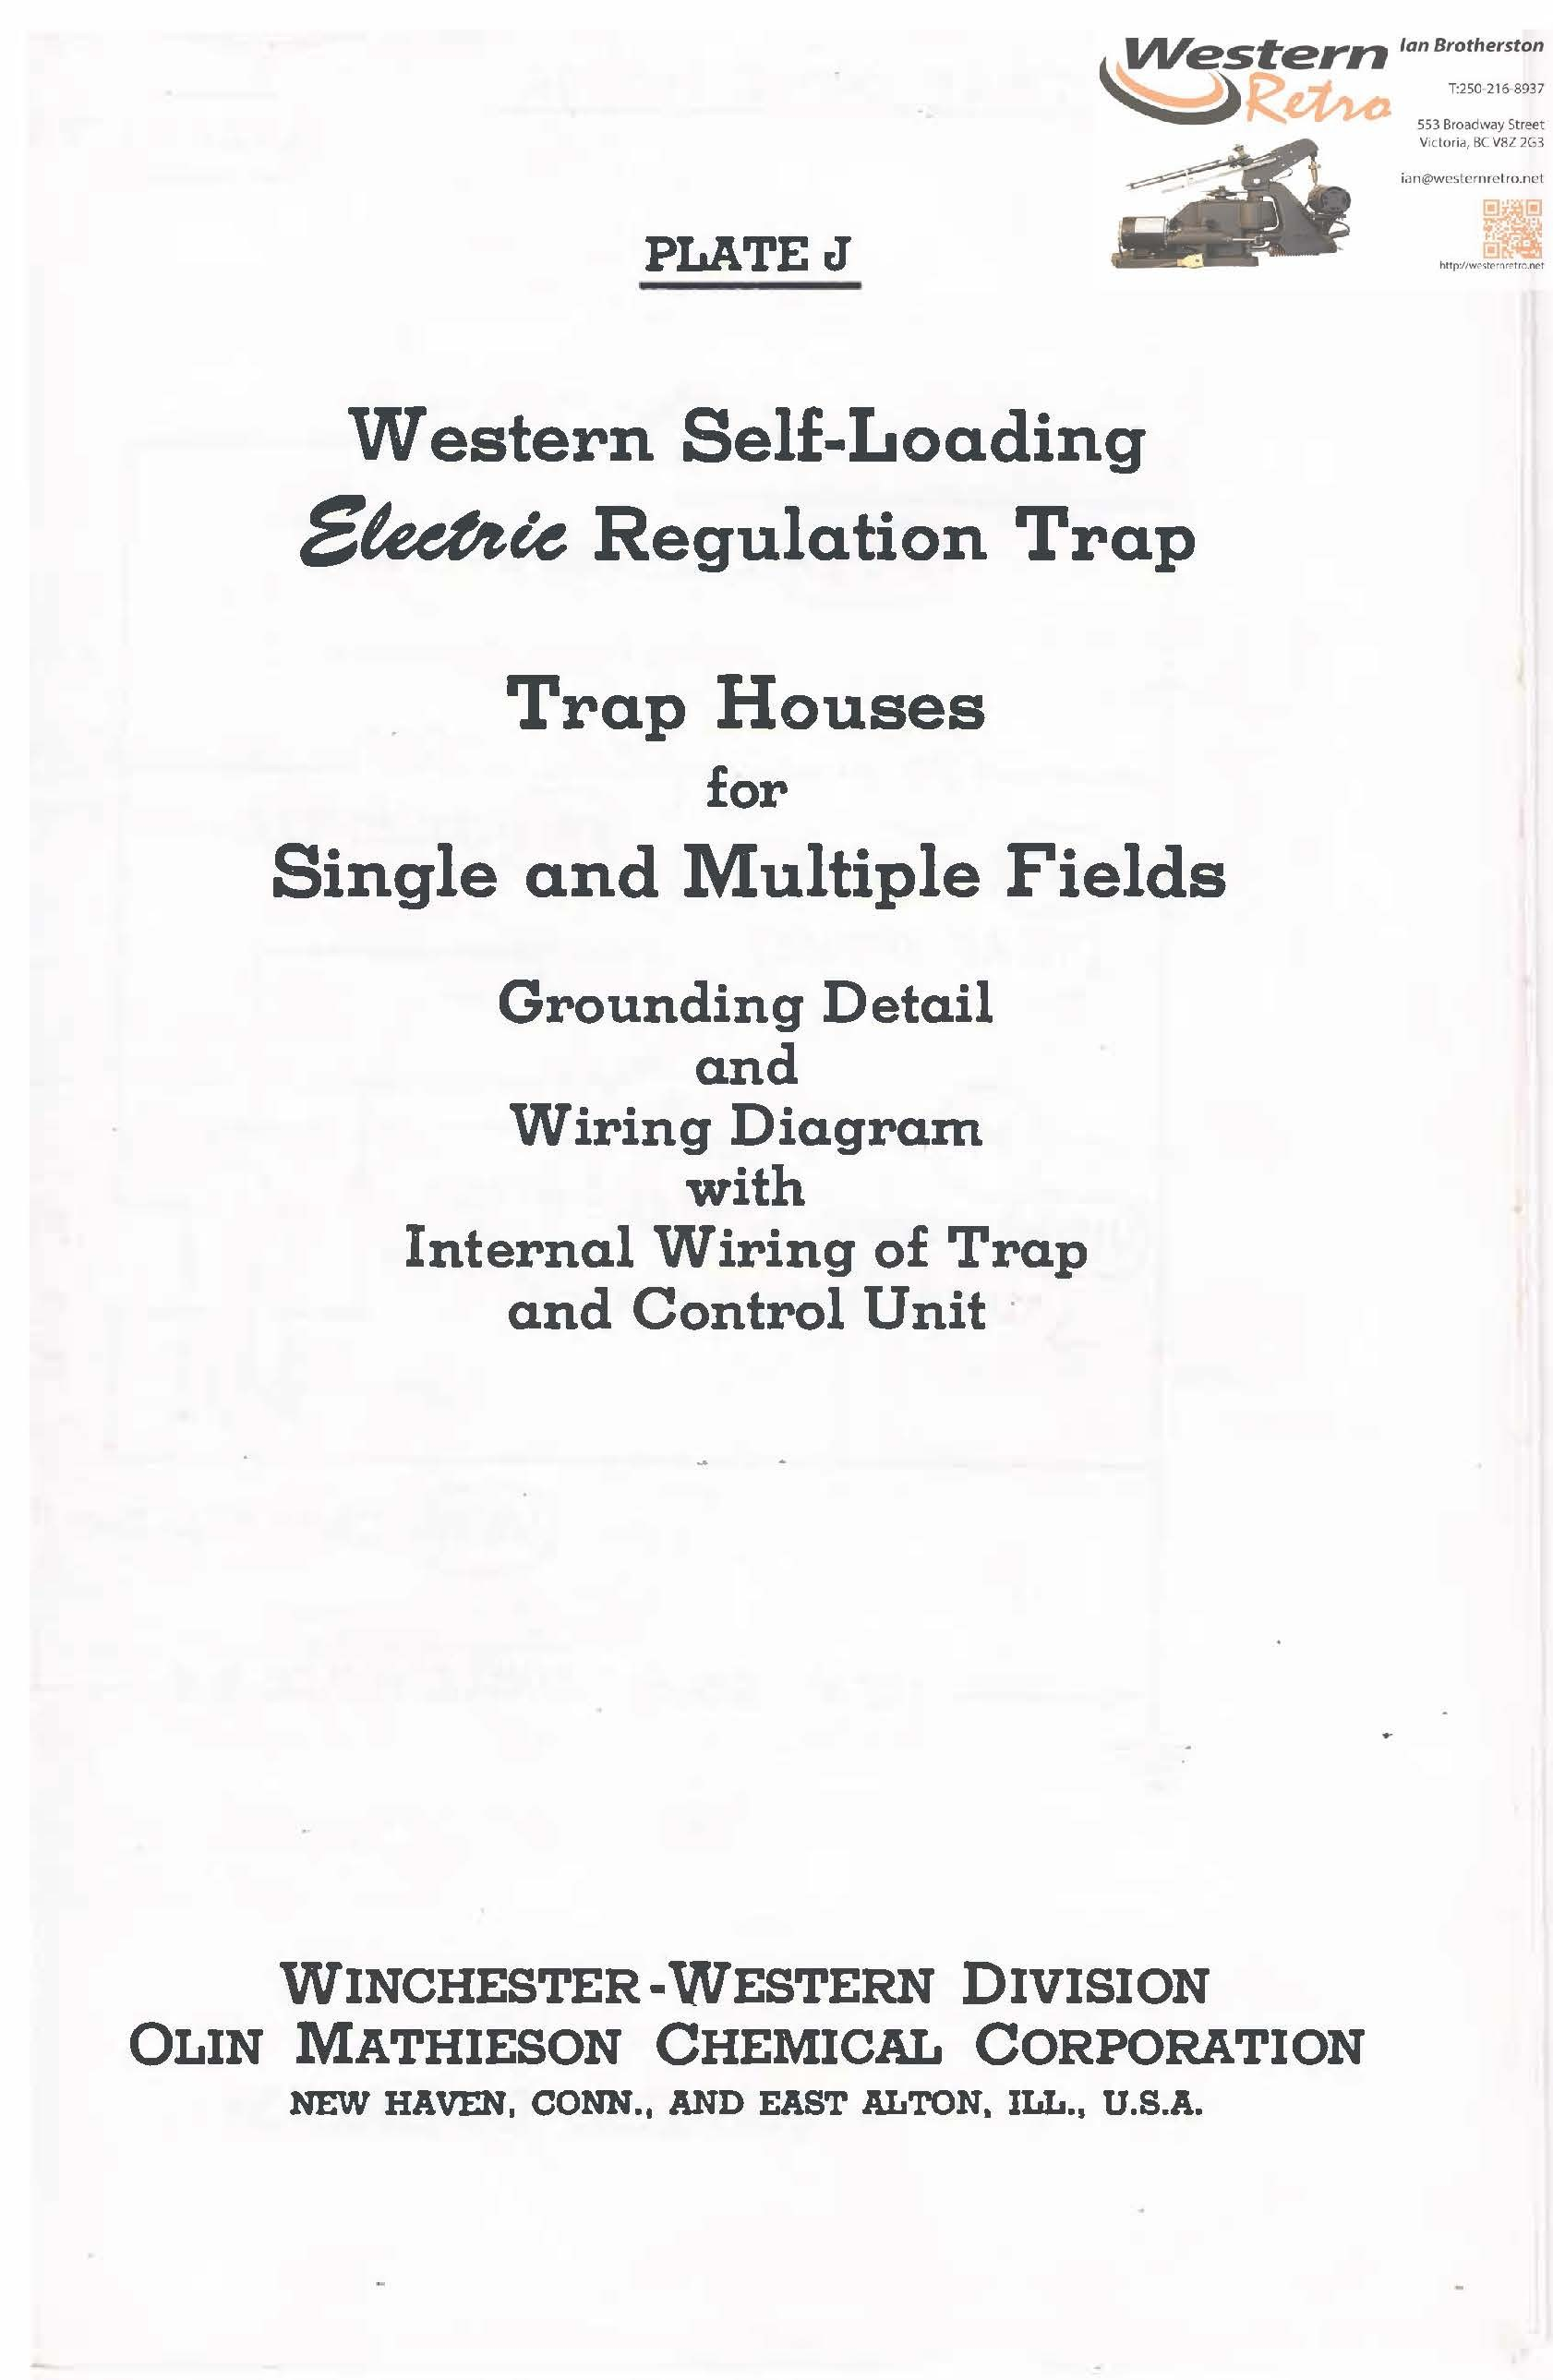 Plate J - Trap House Plans for Western Self-Loading Electric Traps